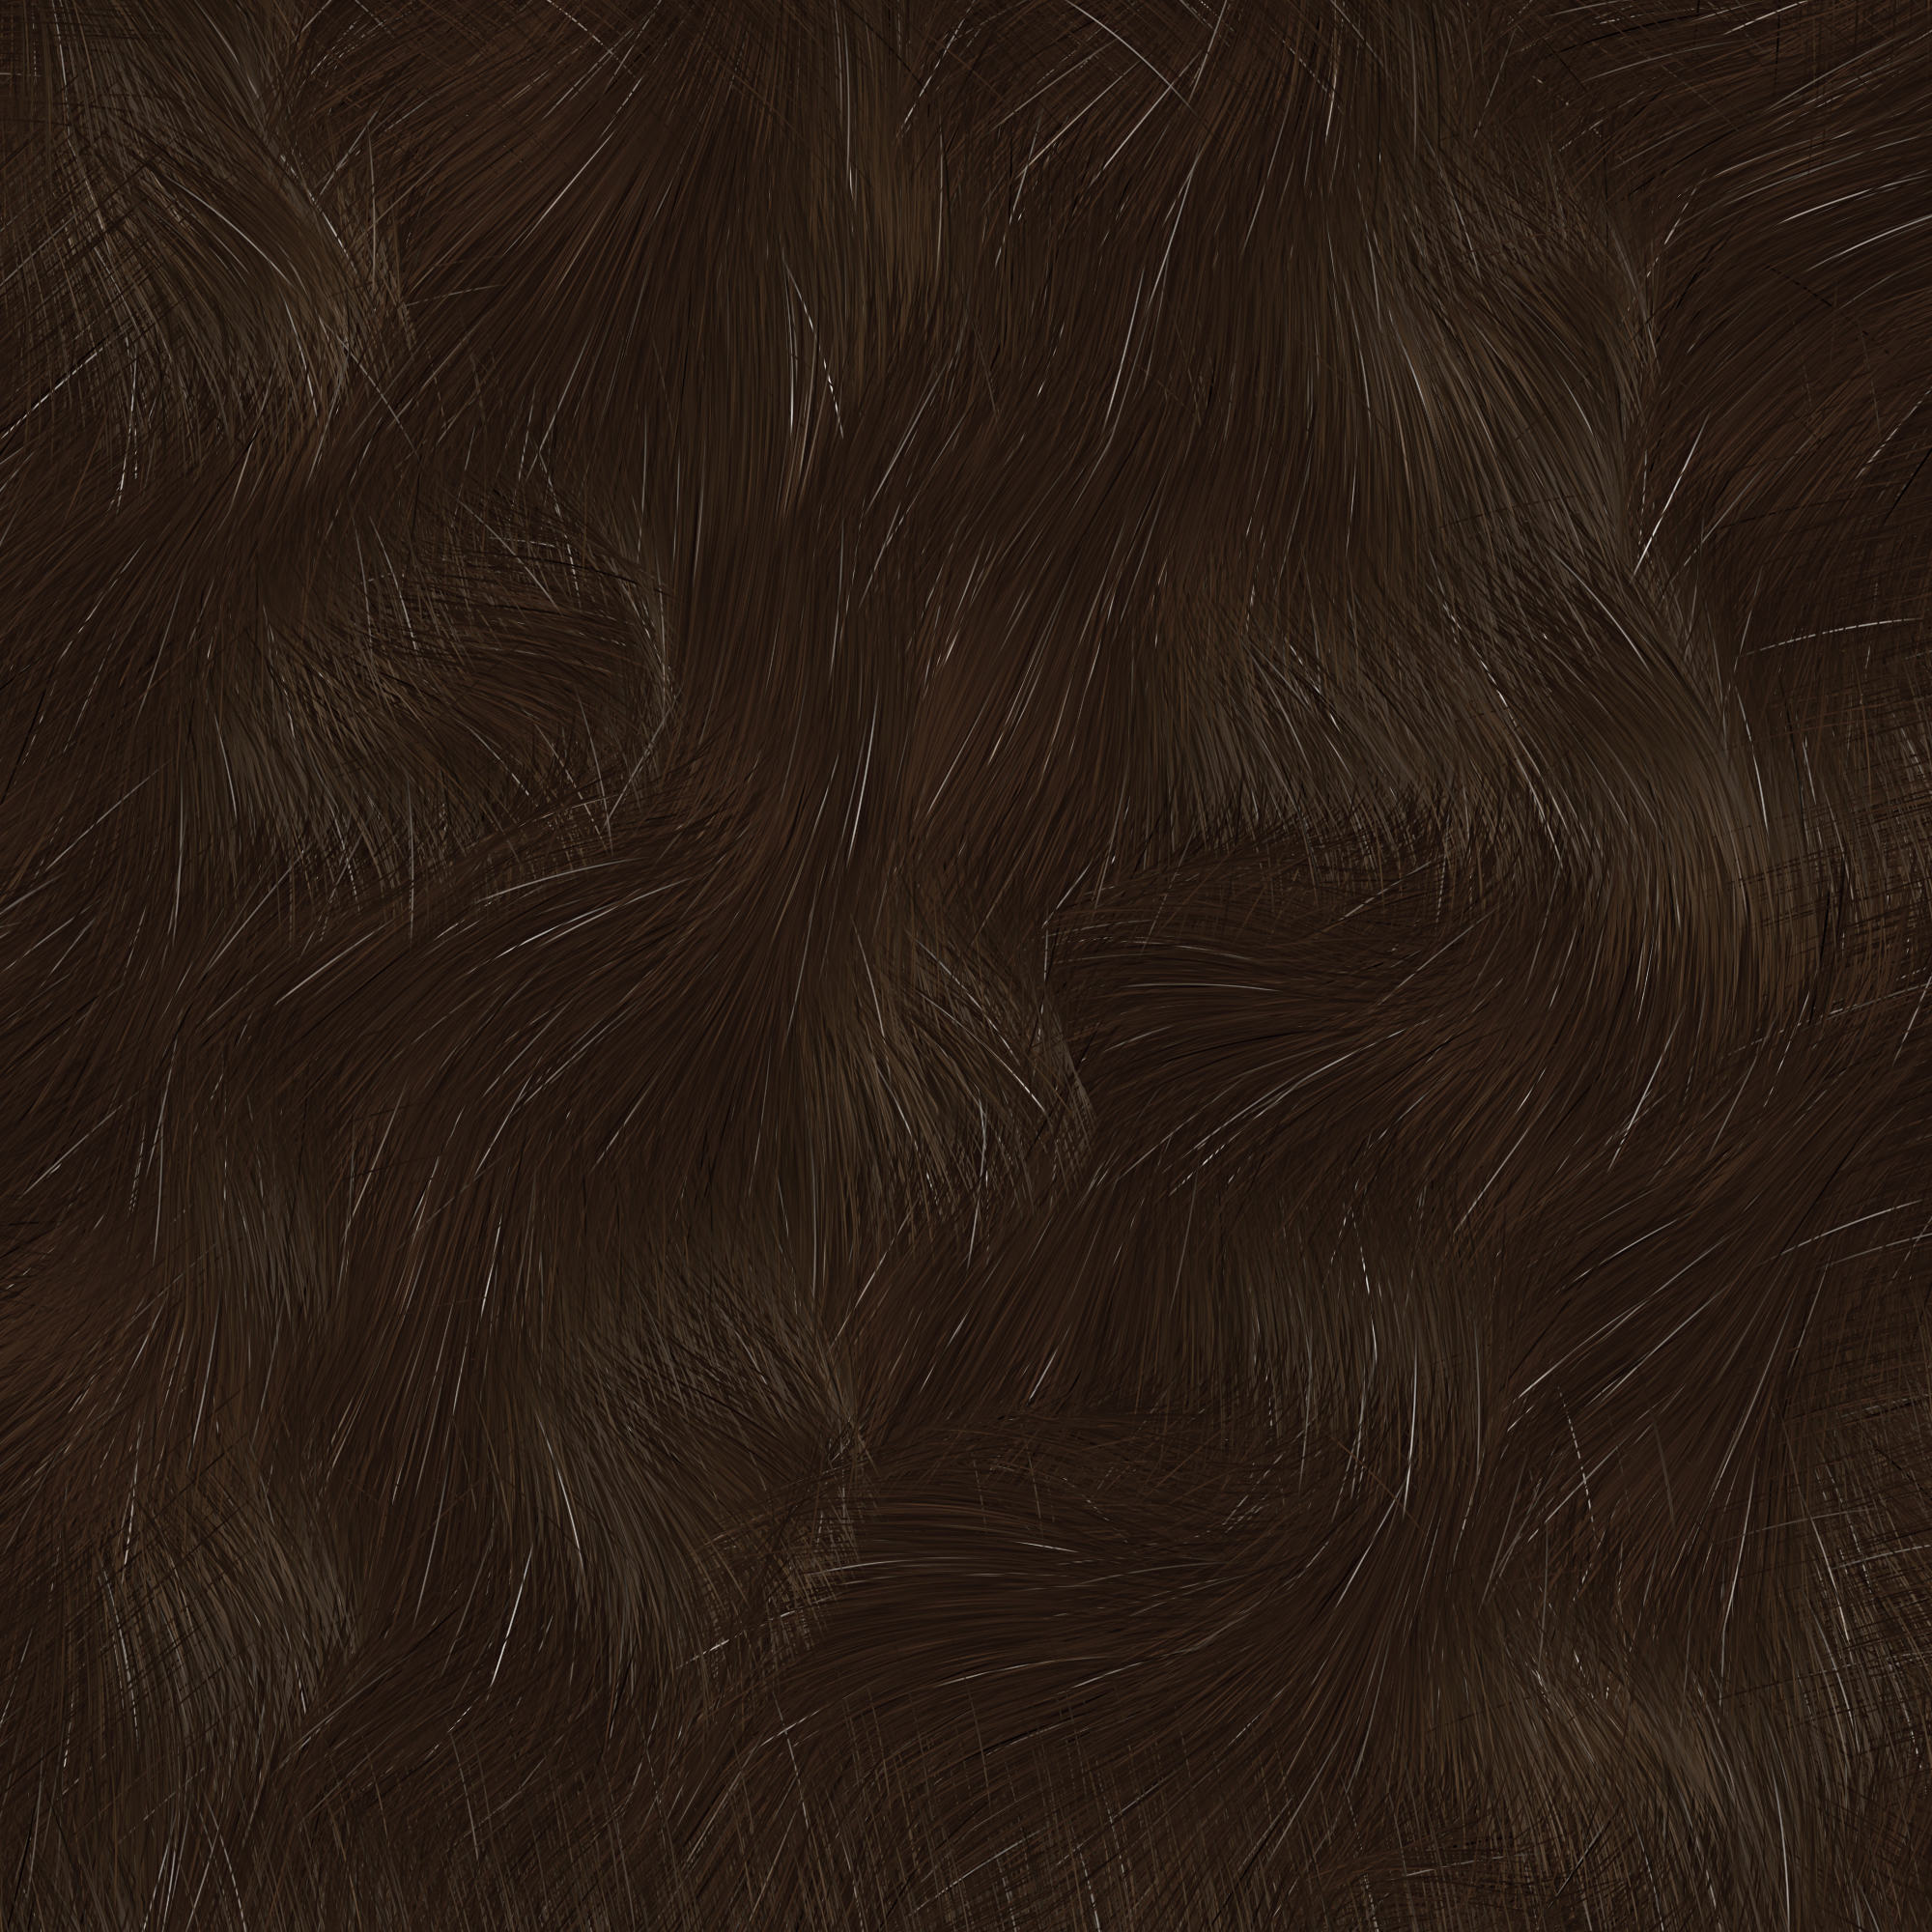 bear, animal texture, background, skin animal texture, background